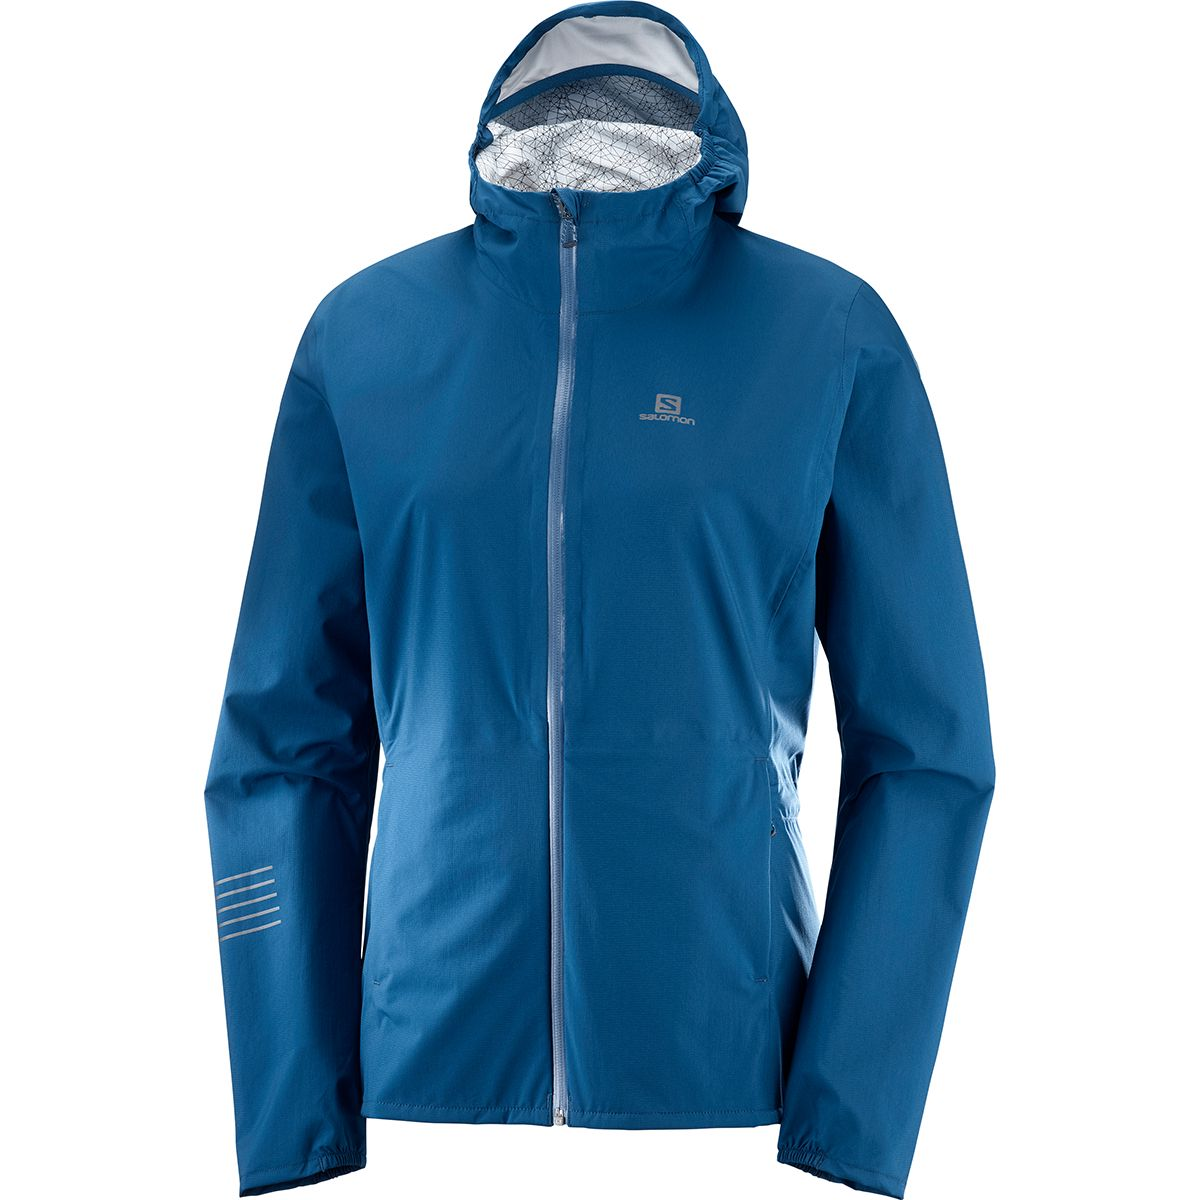 Salomon Damen Lightning WP Jacke (Größe XS, Blau) | Windbreaker > Damen